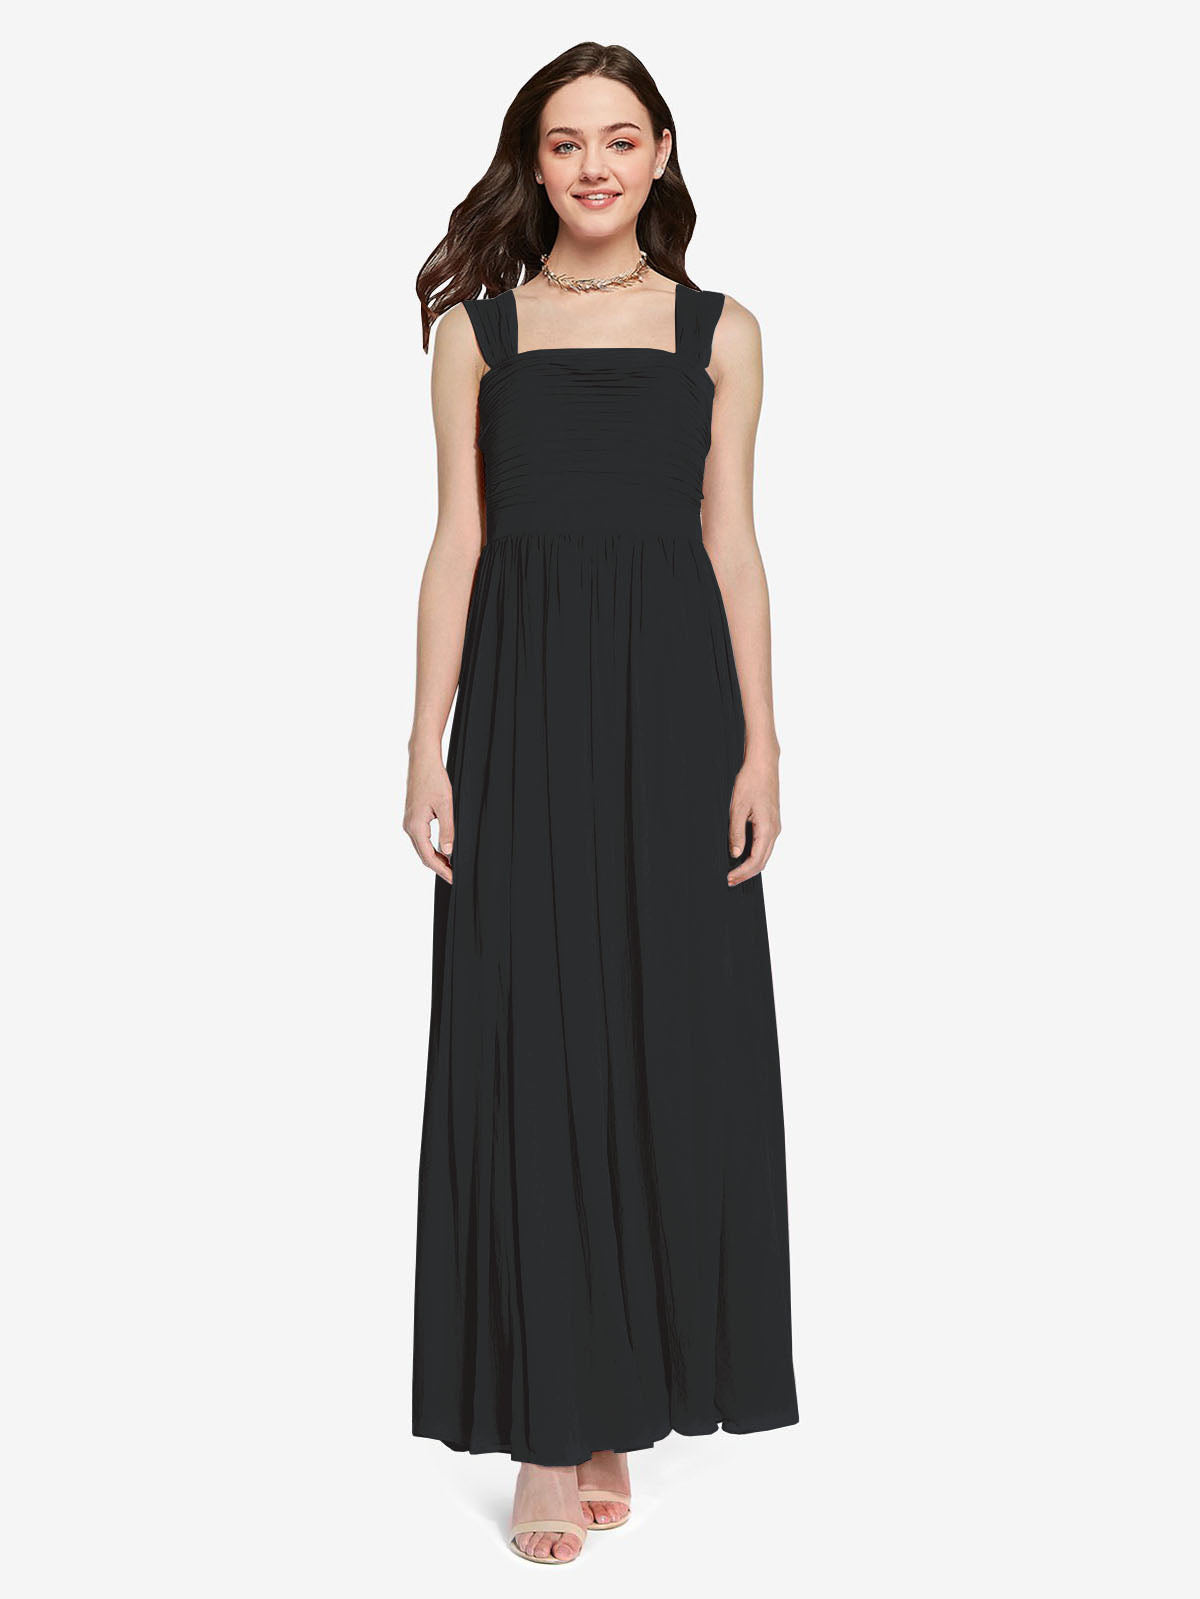 Long A-Line Square Sleeveless Black Chiffon Bridesmaid Dress Aldridge